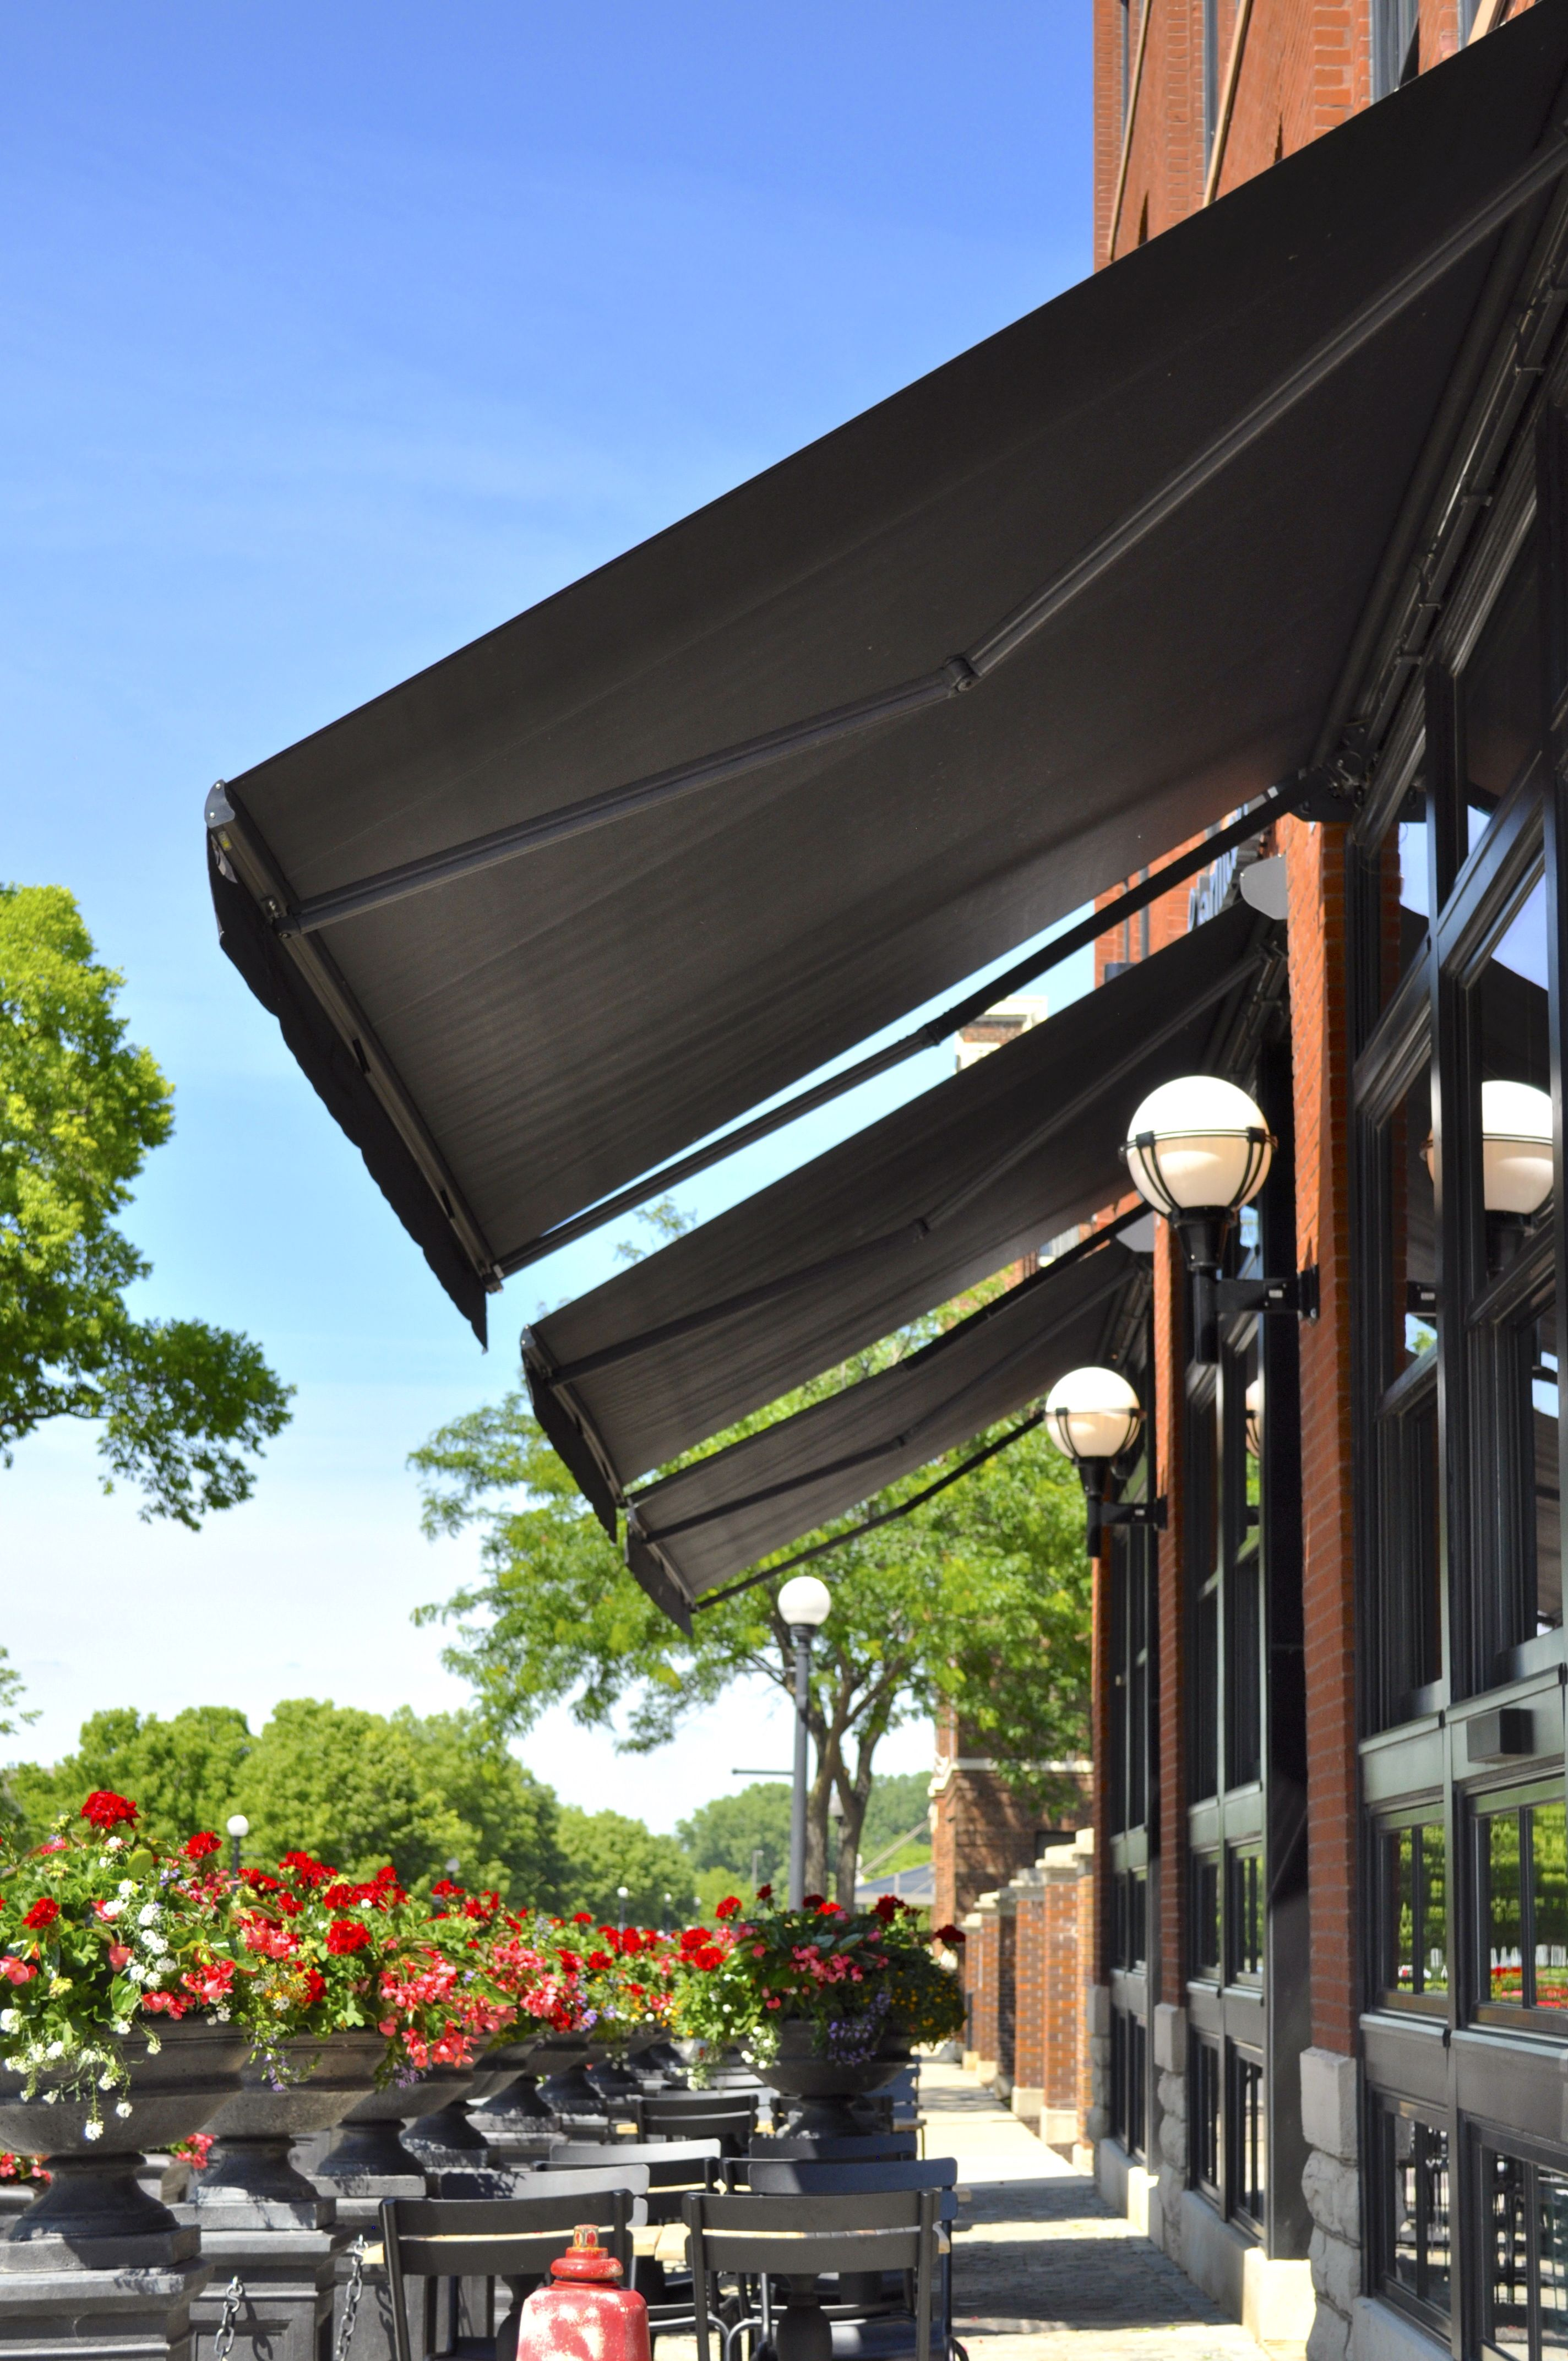 residential lateral venezia the com awnings retractableawnings folding cassette awning full retractable products arm